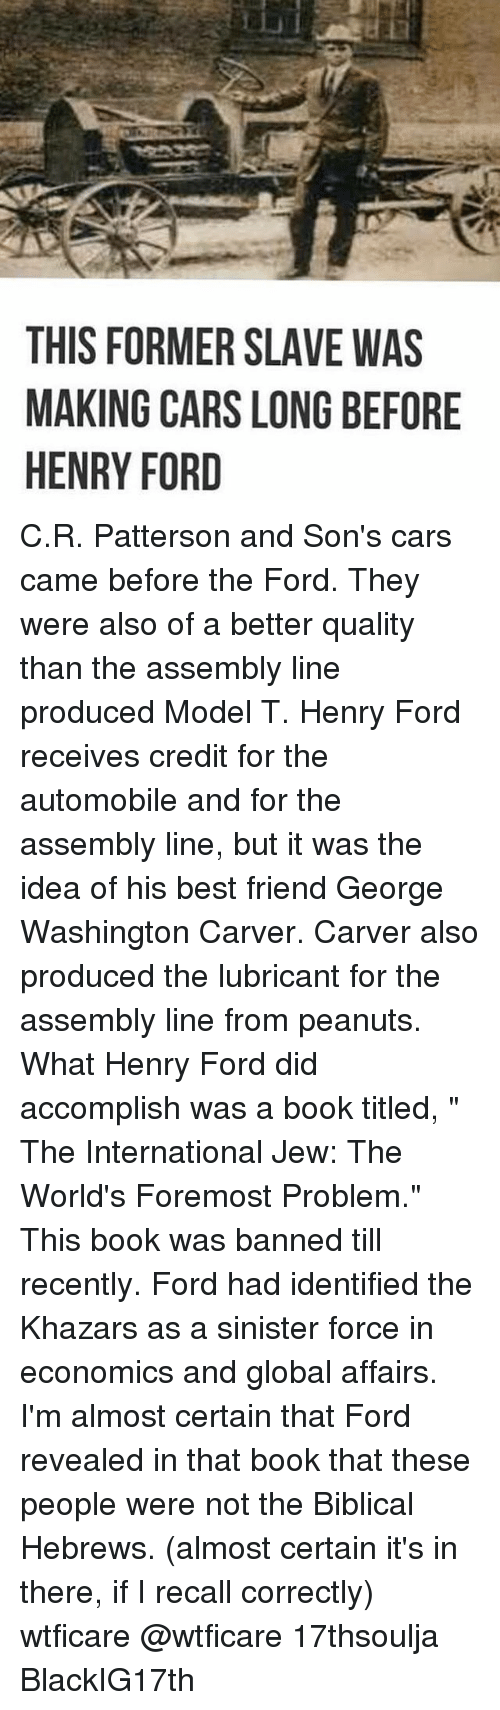 """Best Friend, Cars, and Memes: THIS FORMER SLAVE WAS  MAKING CARS LONG BEFORE  HENRY FORD C.R. Patterson and Son's cars came before the Ford. They were also of a better quality than the assembly line produced Model T. Henry Ford receives credit for the automobile and for the assembly line, but it was the idea of his best friend George Washington Carver. Carver also produced the lubricant for the assembly line from peanuts. What Henry Ford did accomplish was a book titled, """" The International Jew: The World's Foremost Problem."""" This book was banned till recently. Ford had identified the Khazars as a sinister force in economics and global affairs. I'm almost certain that Ford revealed in that book that these people were not the Biblical Hebrews. (almost certain it's in there, if I recall correctly) wtficare @wtficare 17thsoulja BlackIG17th"""